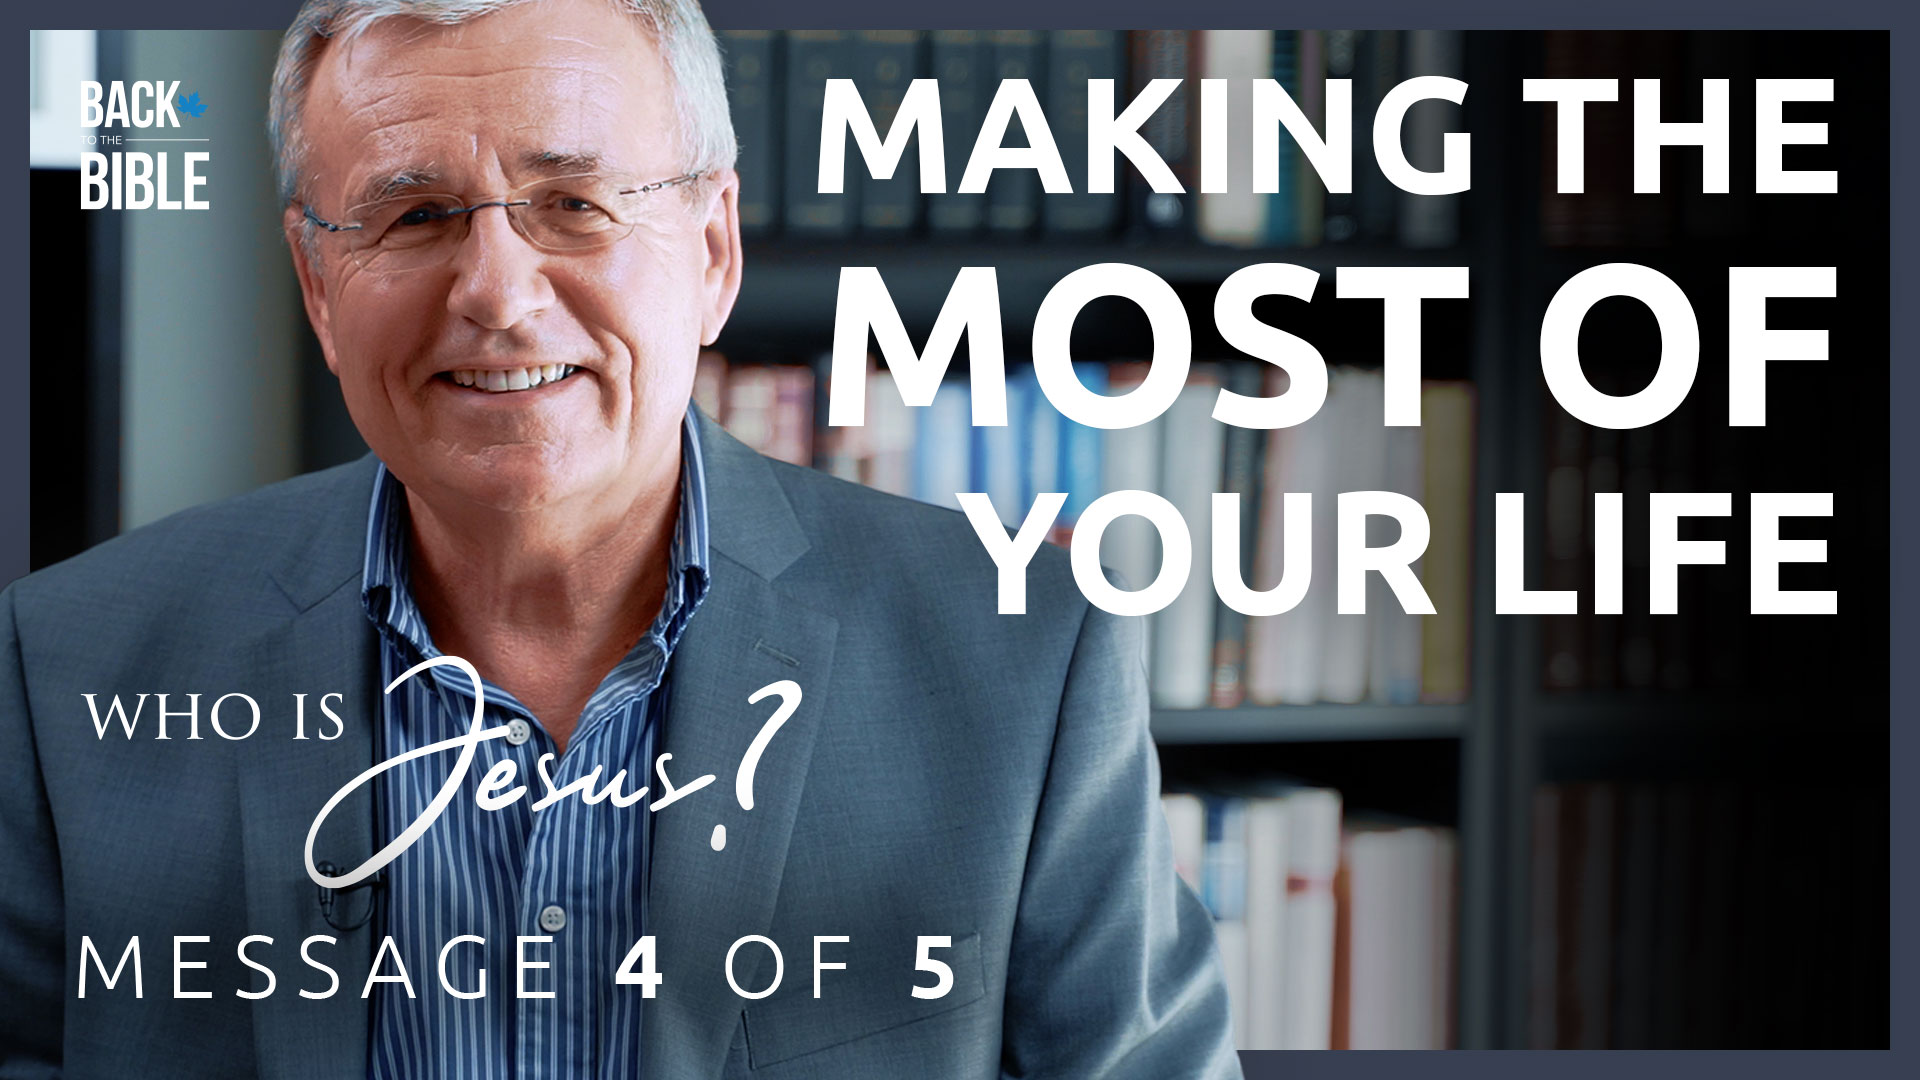 Making the Most of Your Life - Who is Jesus? - Dr. John Neufeld - Back to the Bible Canada